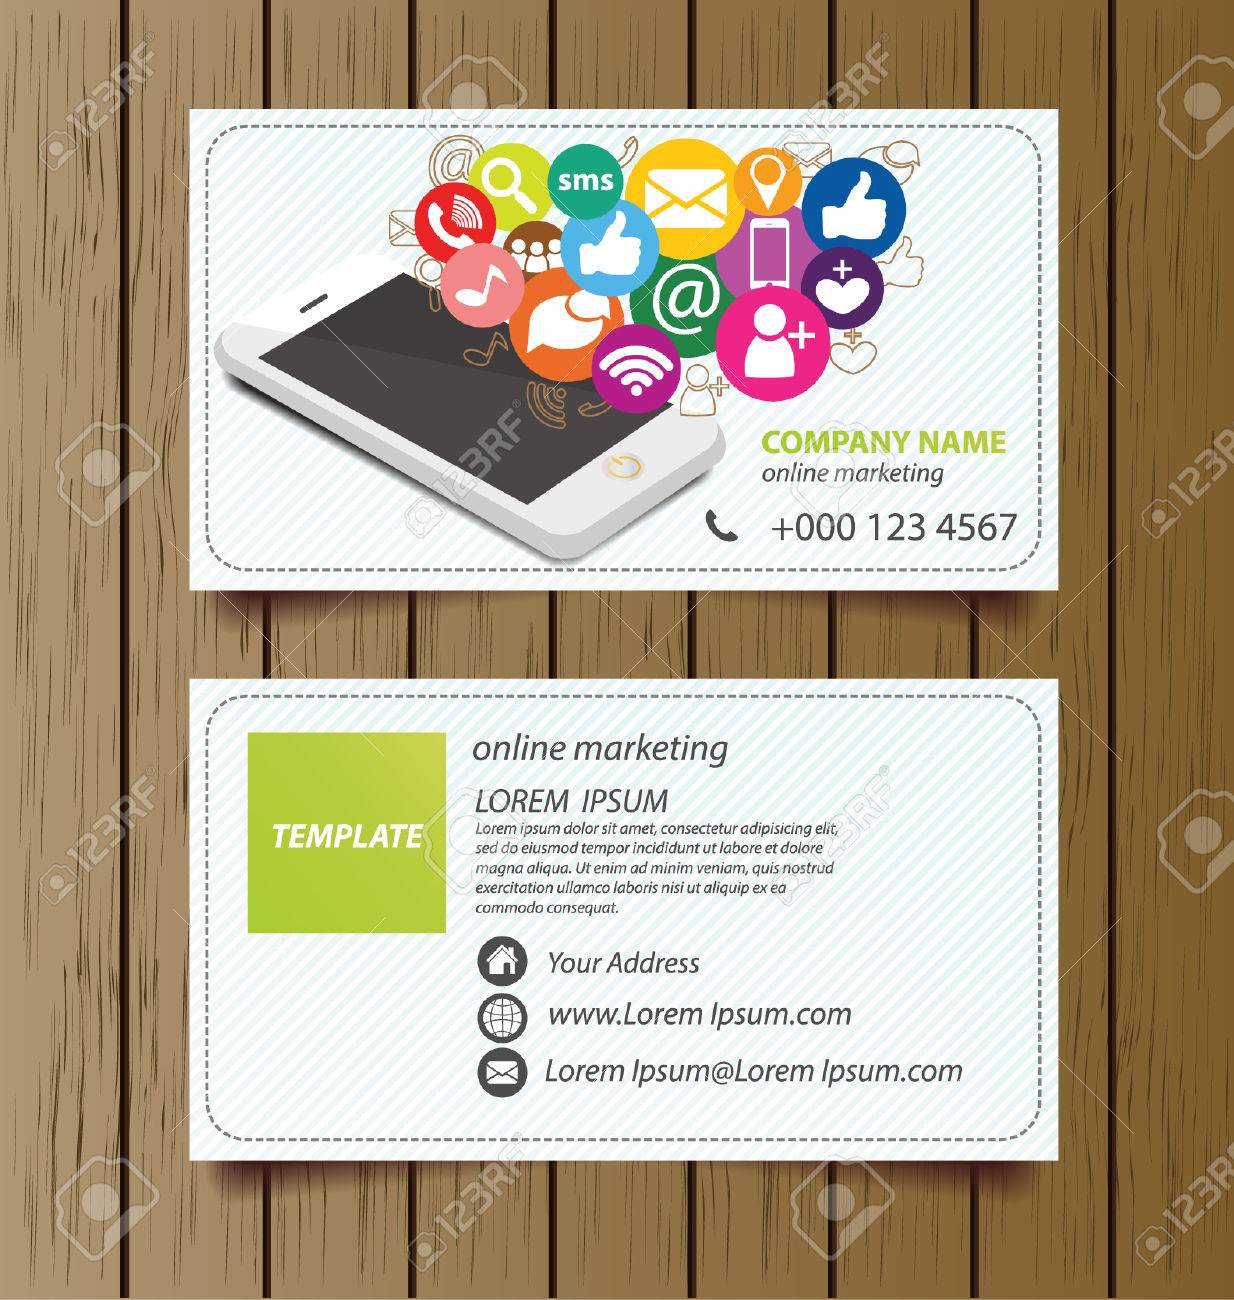 Business Cards Templates Online